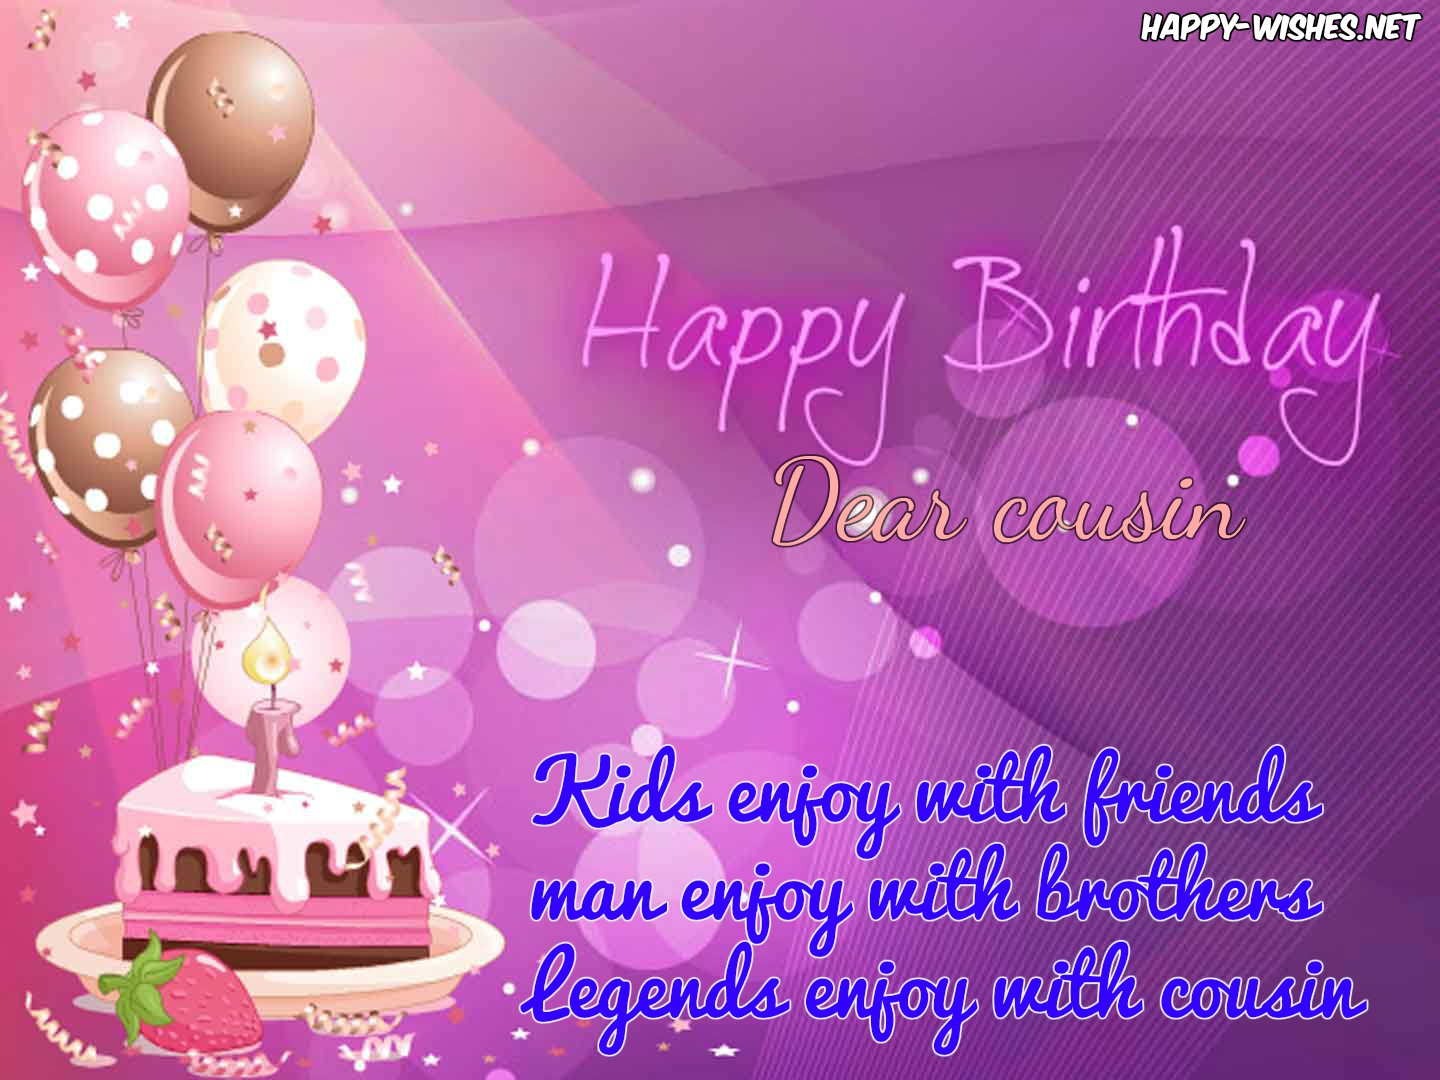 happy birthday cousin images and quotes ; 8233c607397ff2be2afdf2e0f56f9f02